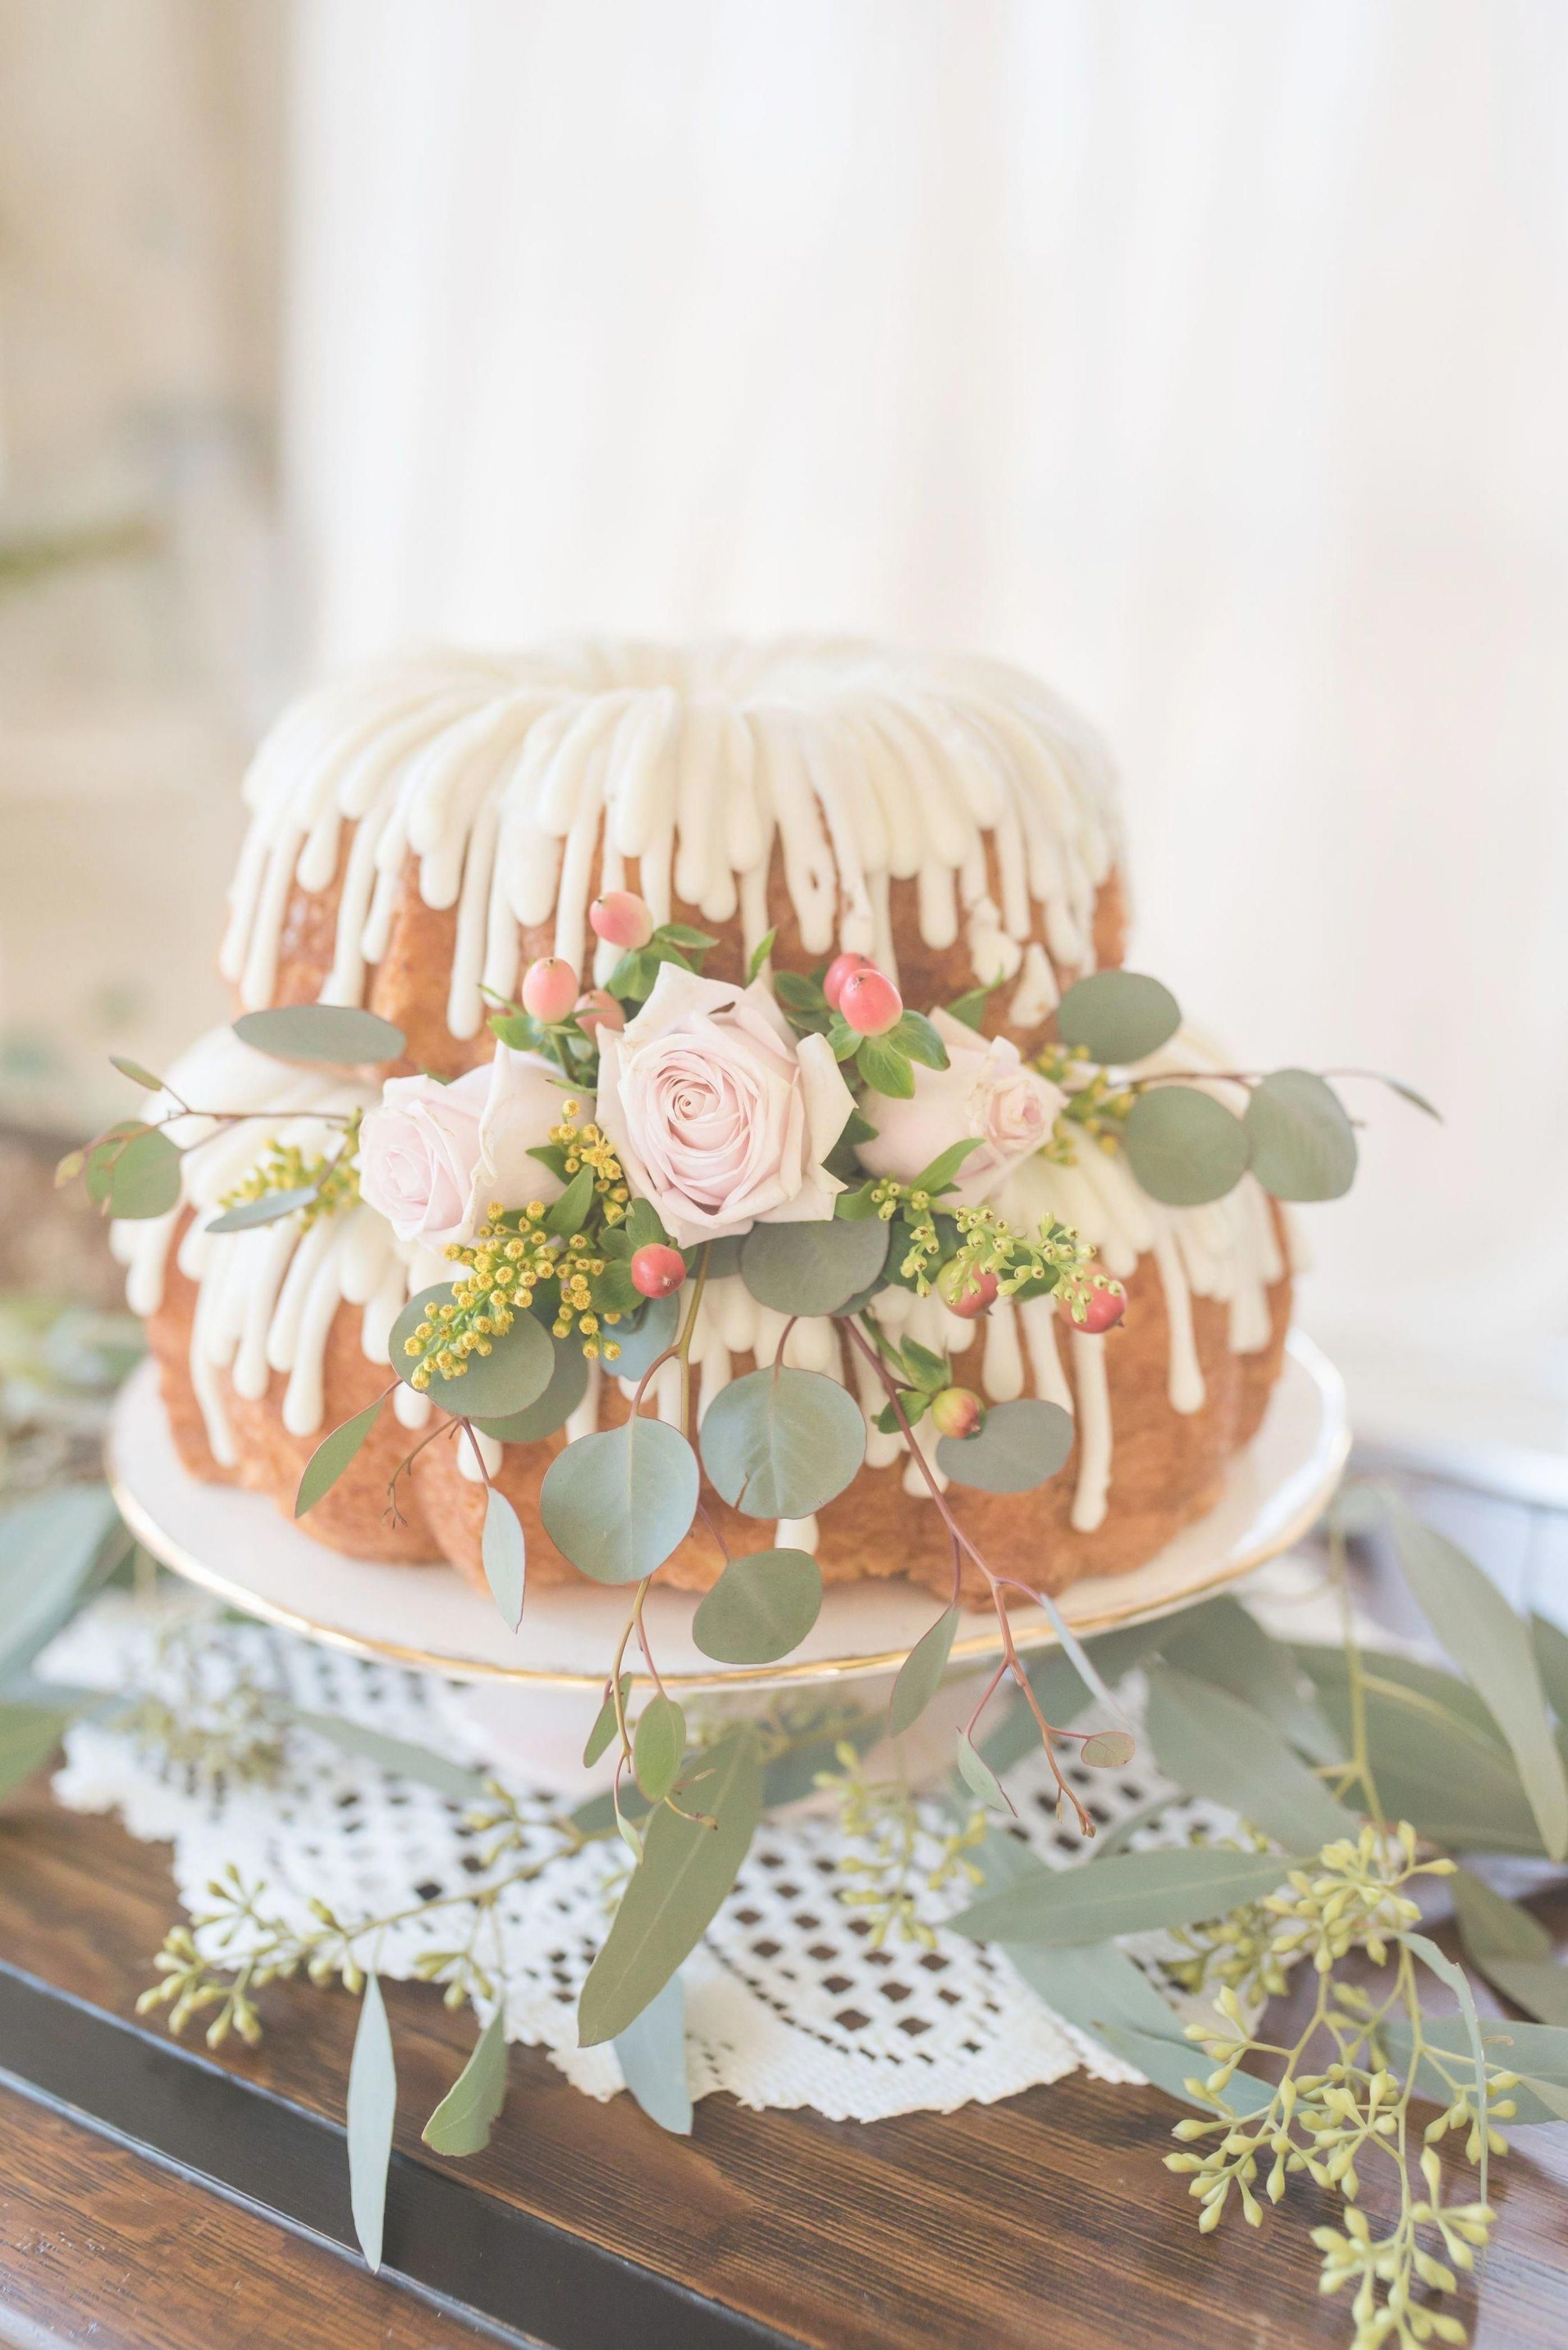 Best wedding cake toppers in 2020 with images bundt